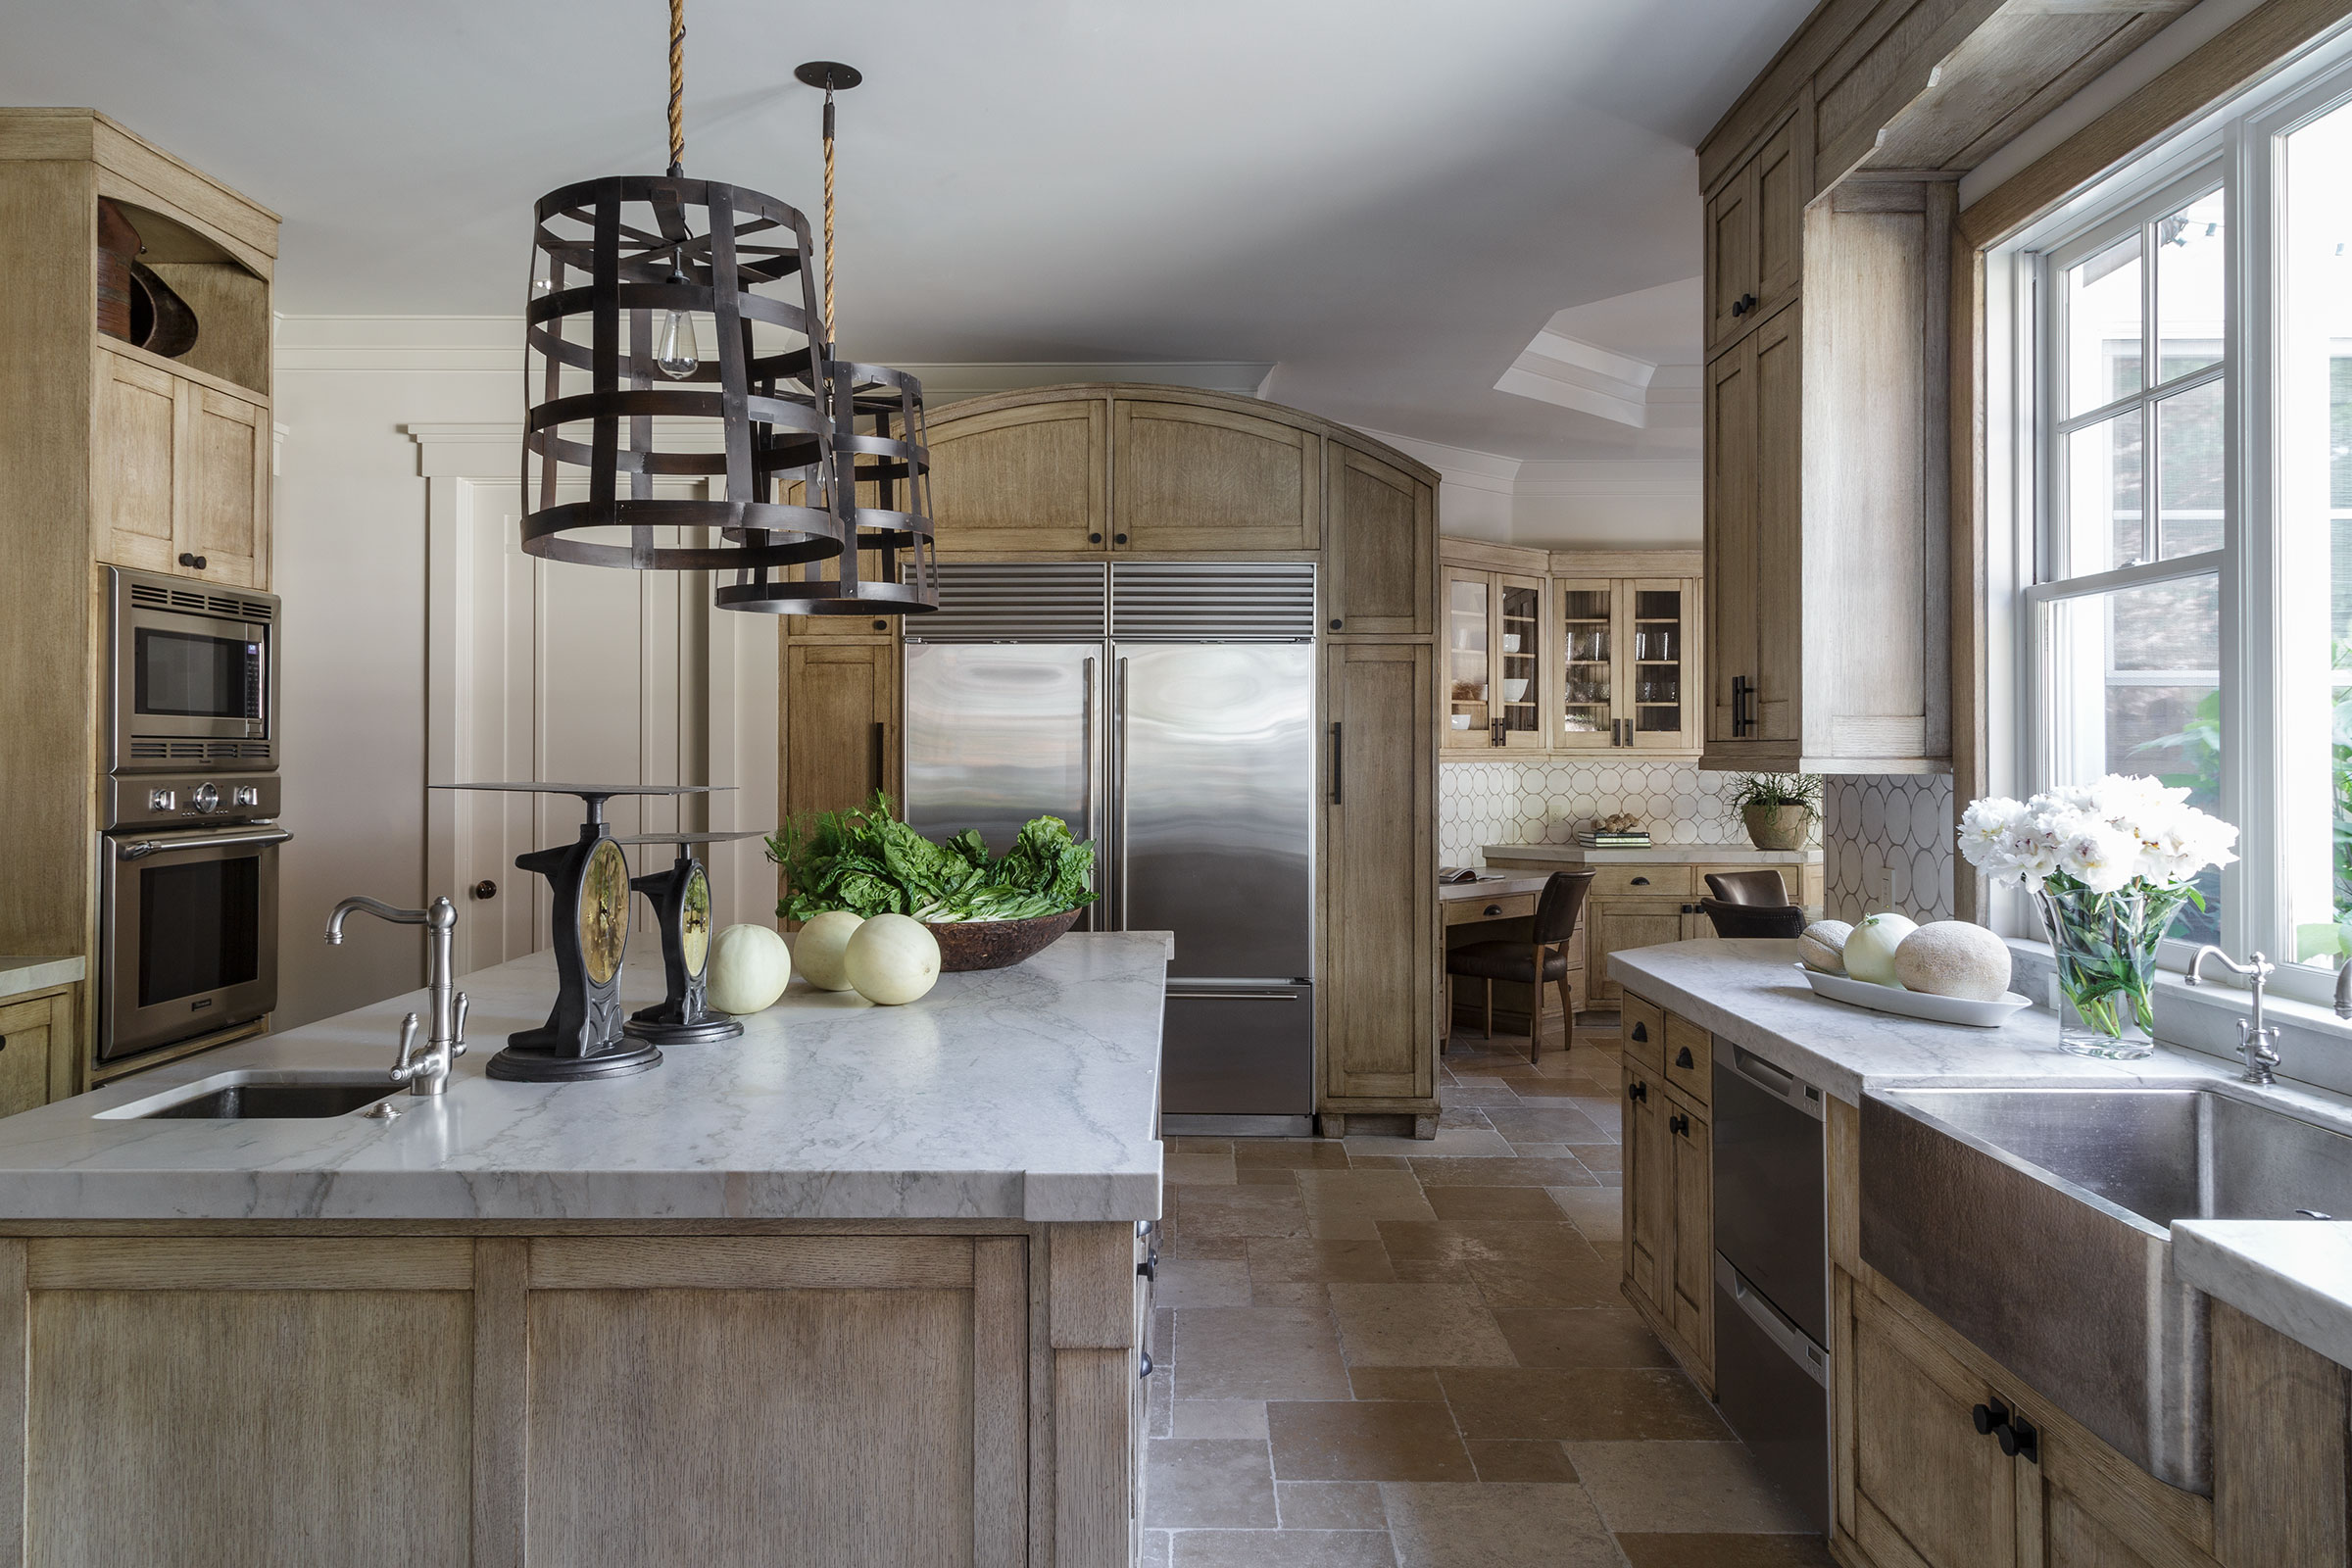 Diablo Shingle Style Kitchen with View to Dining Area Buestad Construction